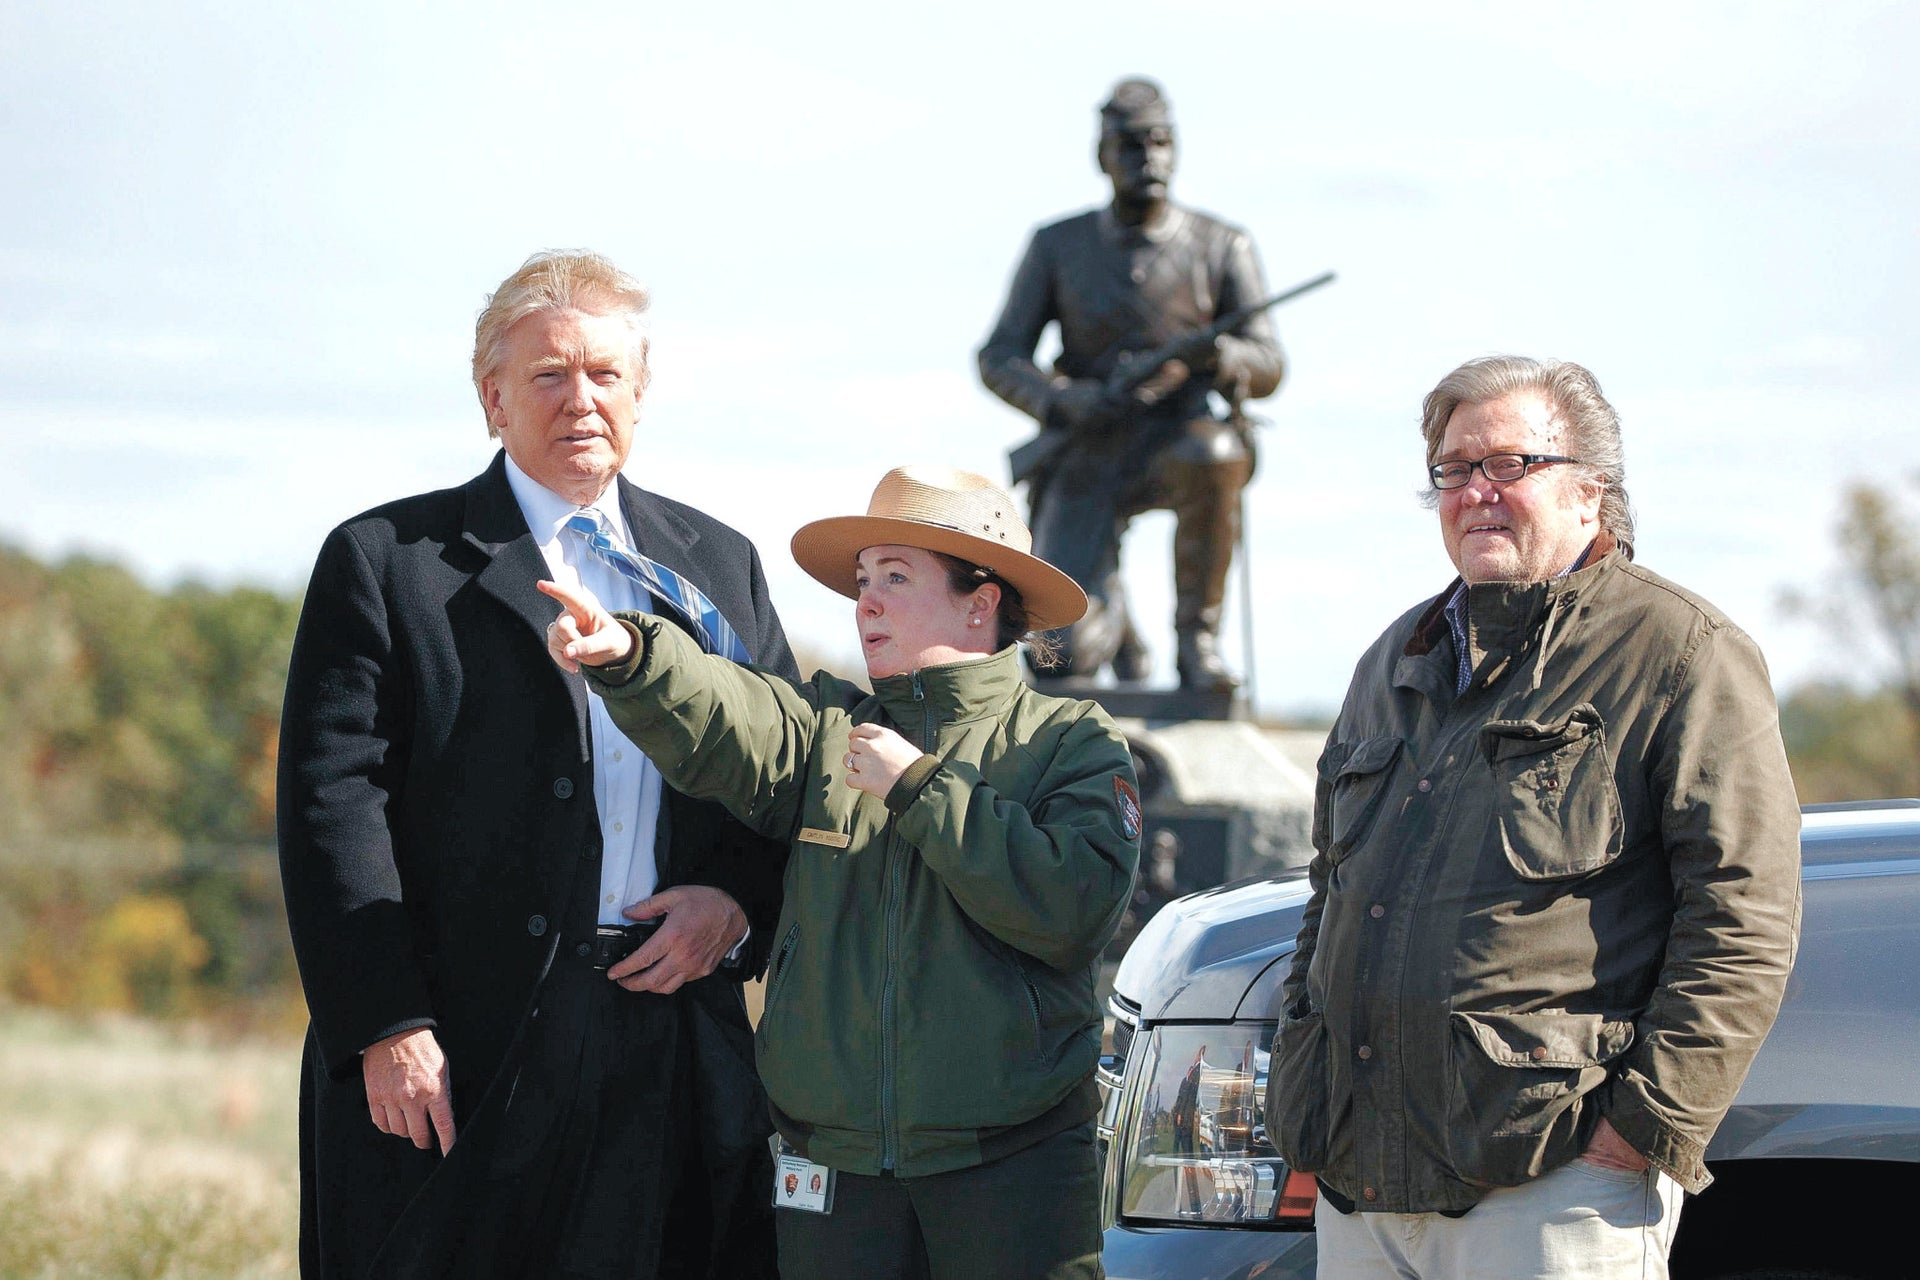 Trump and Bannon on a tour of the  Confederacy at Gettysburg National Military Park, Oct. 22, 2016, in Gettysburg, Pa.